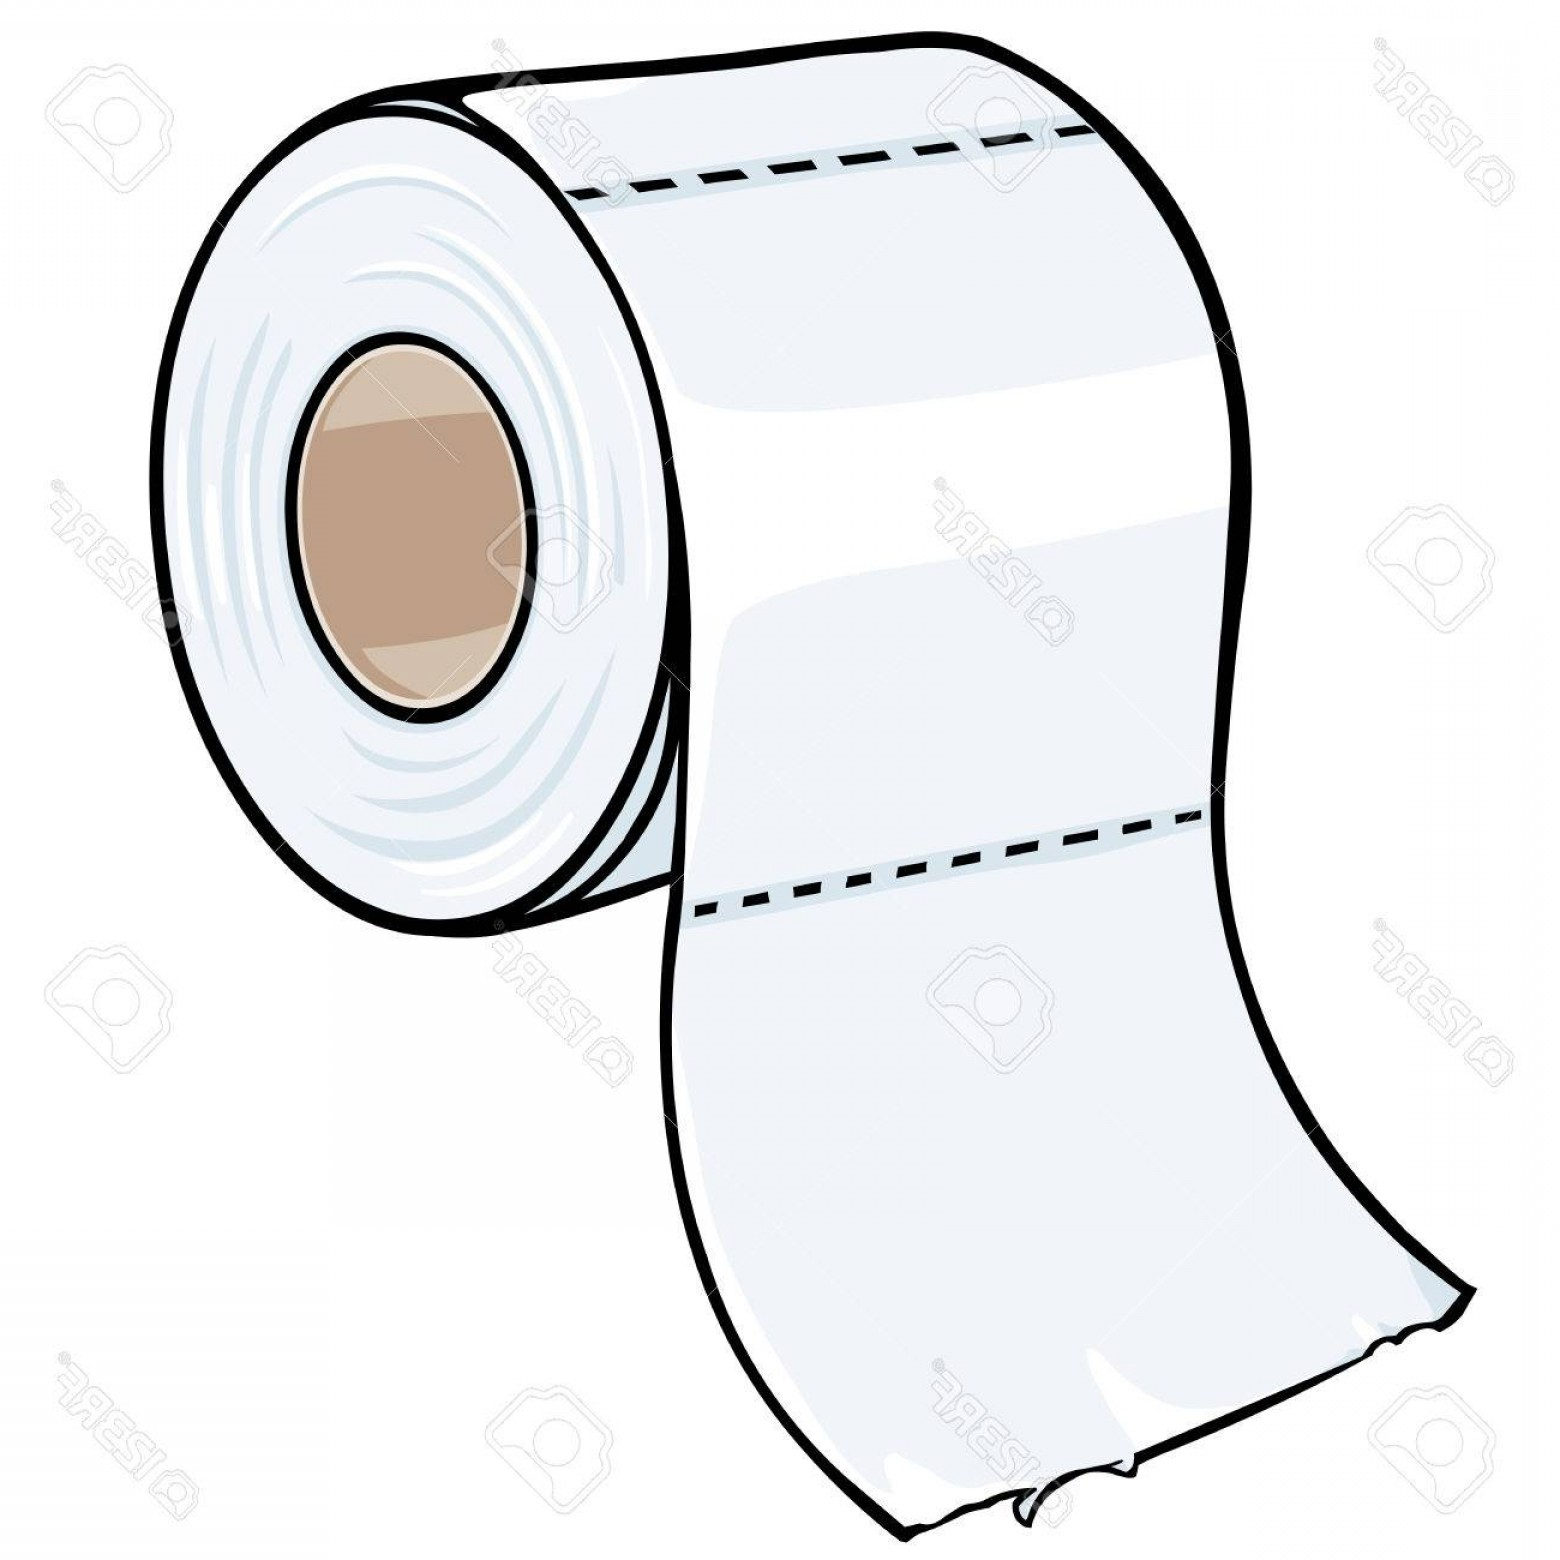 Toilet Paper Vector: Photostock Vector Vector Cartoon Toilet Paper On White Background